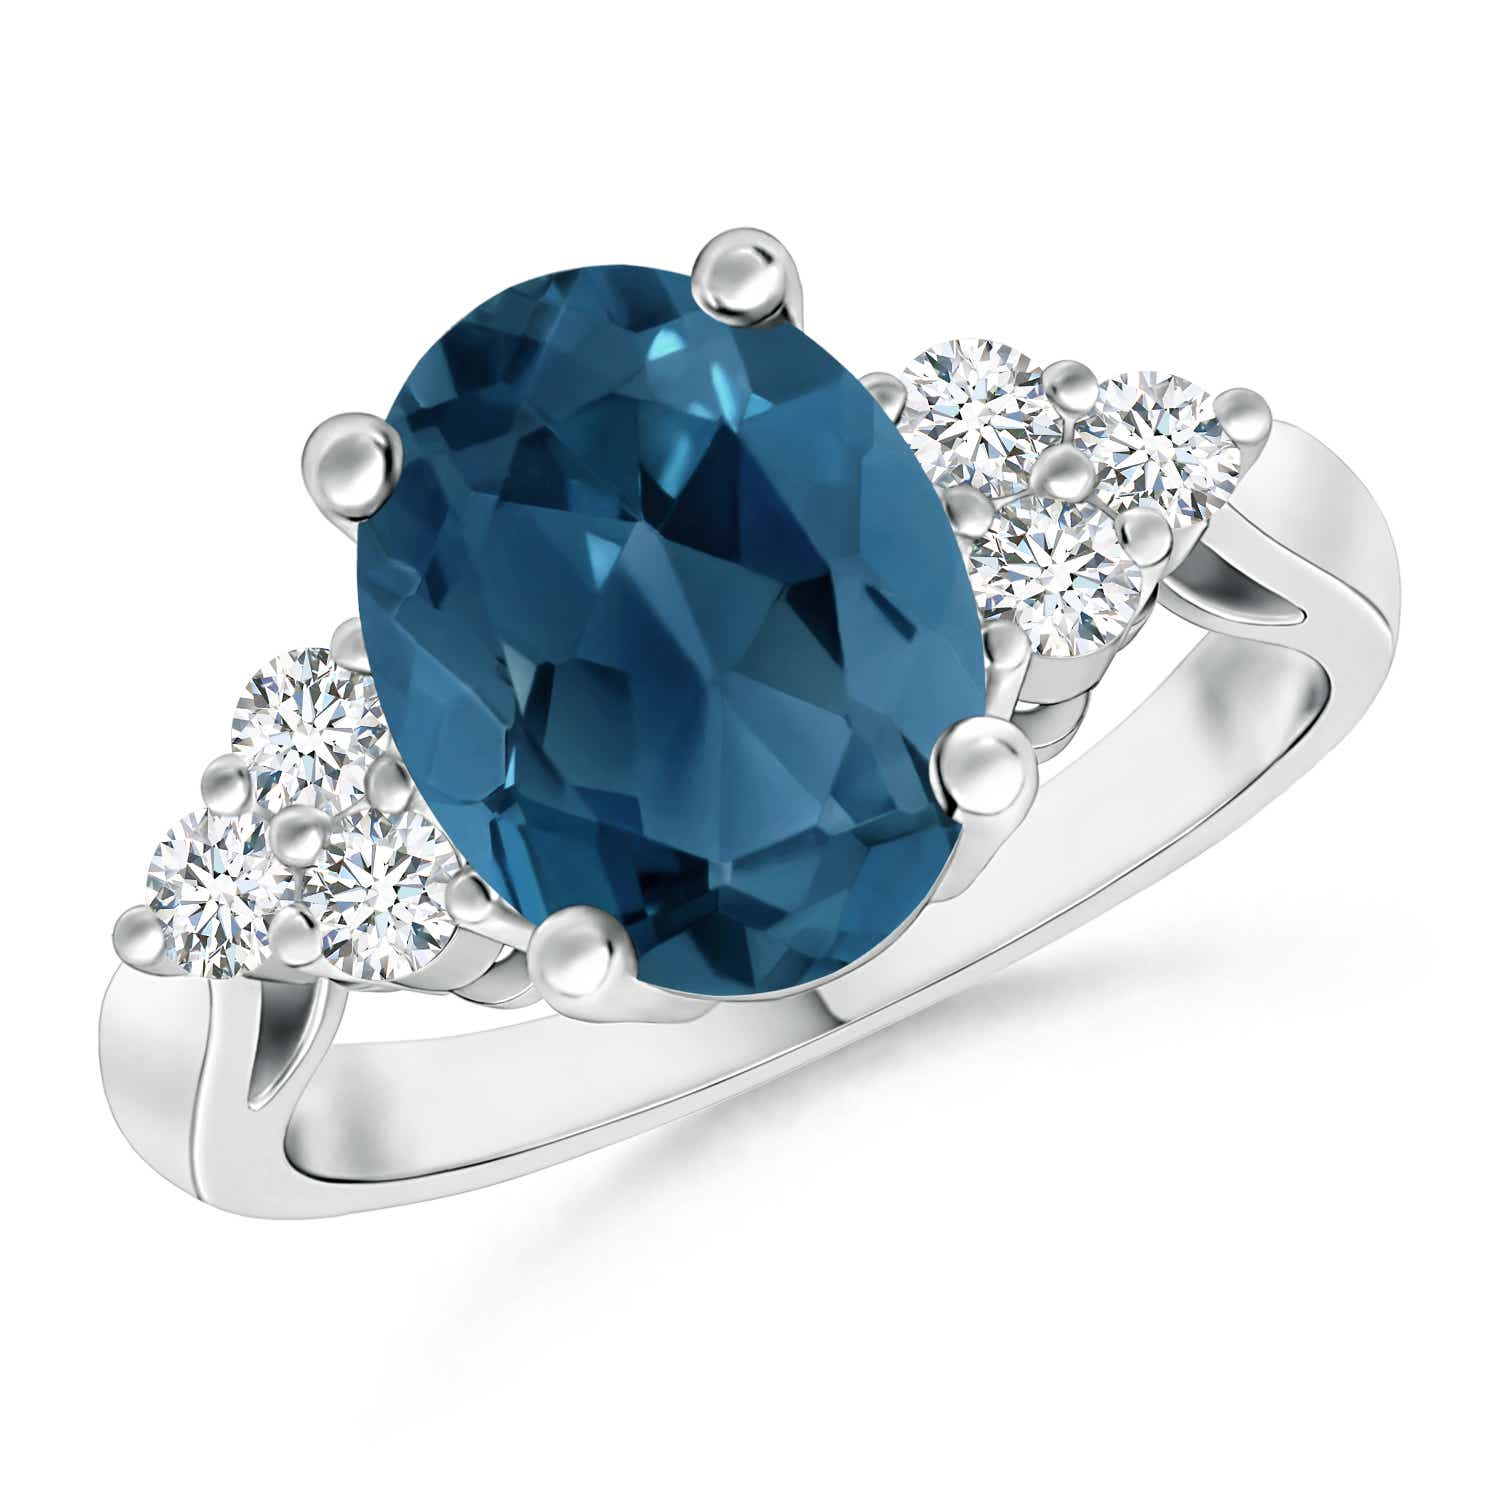 Angara Cocktail Ring with Natural London Blue Topaz in White Gold OfUr6yS